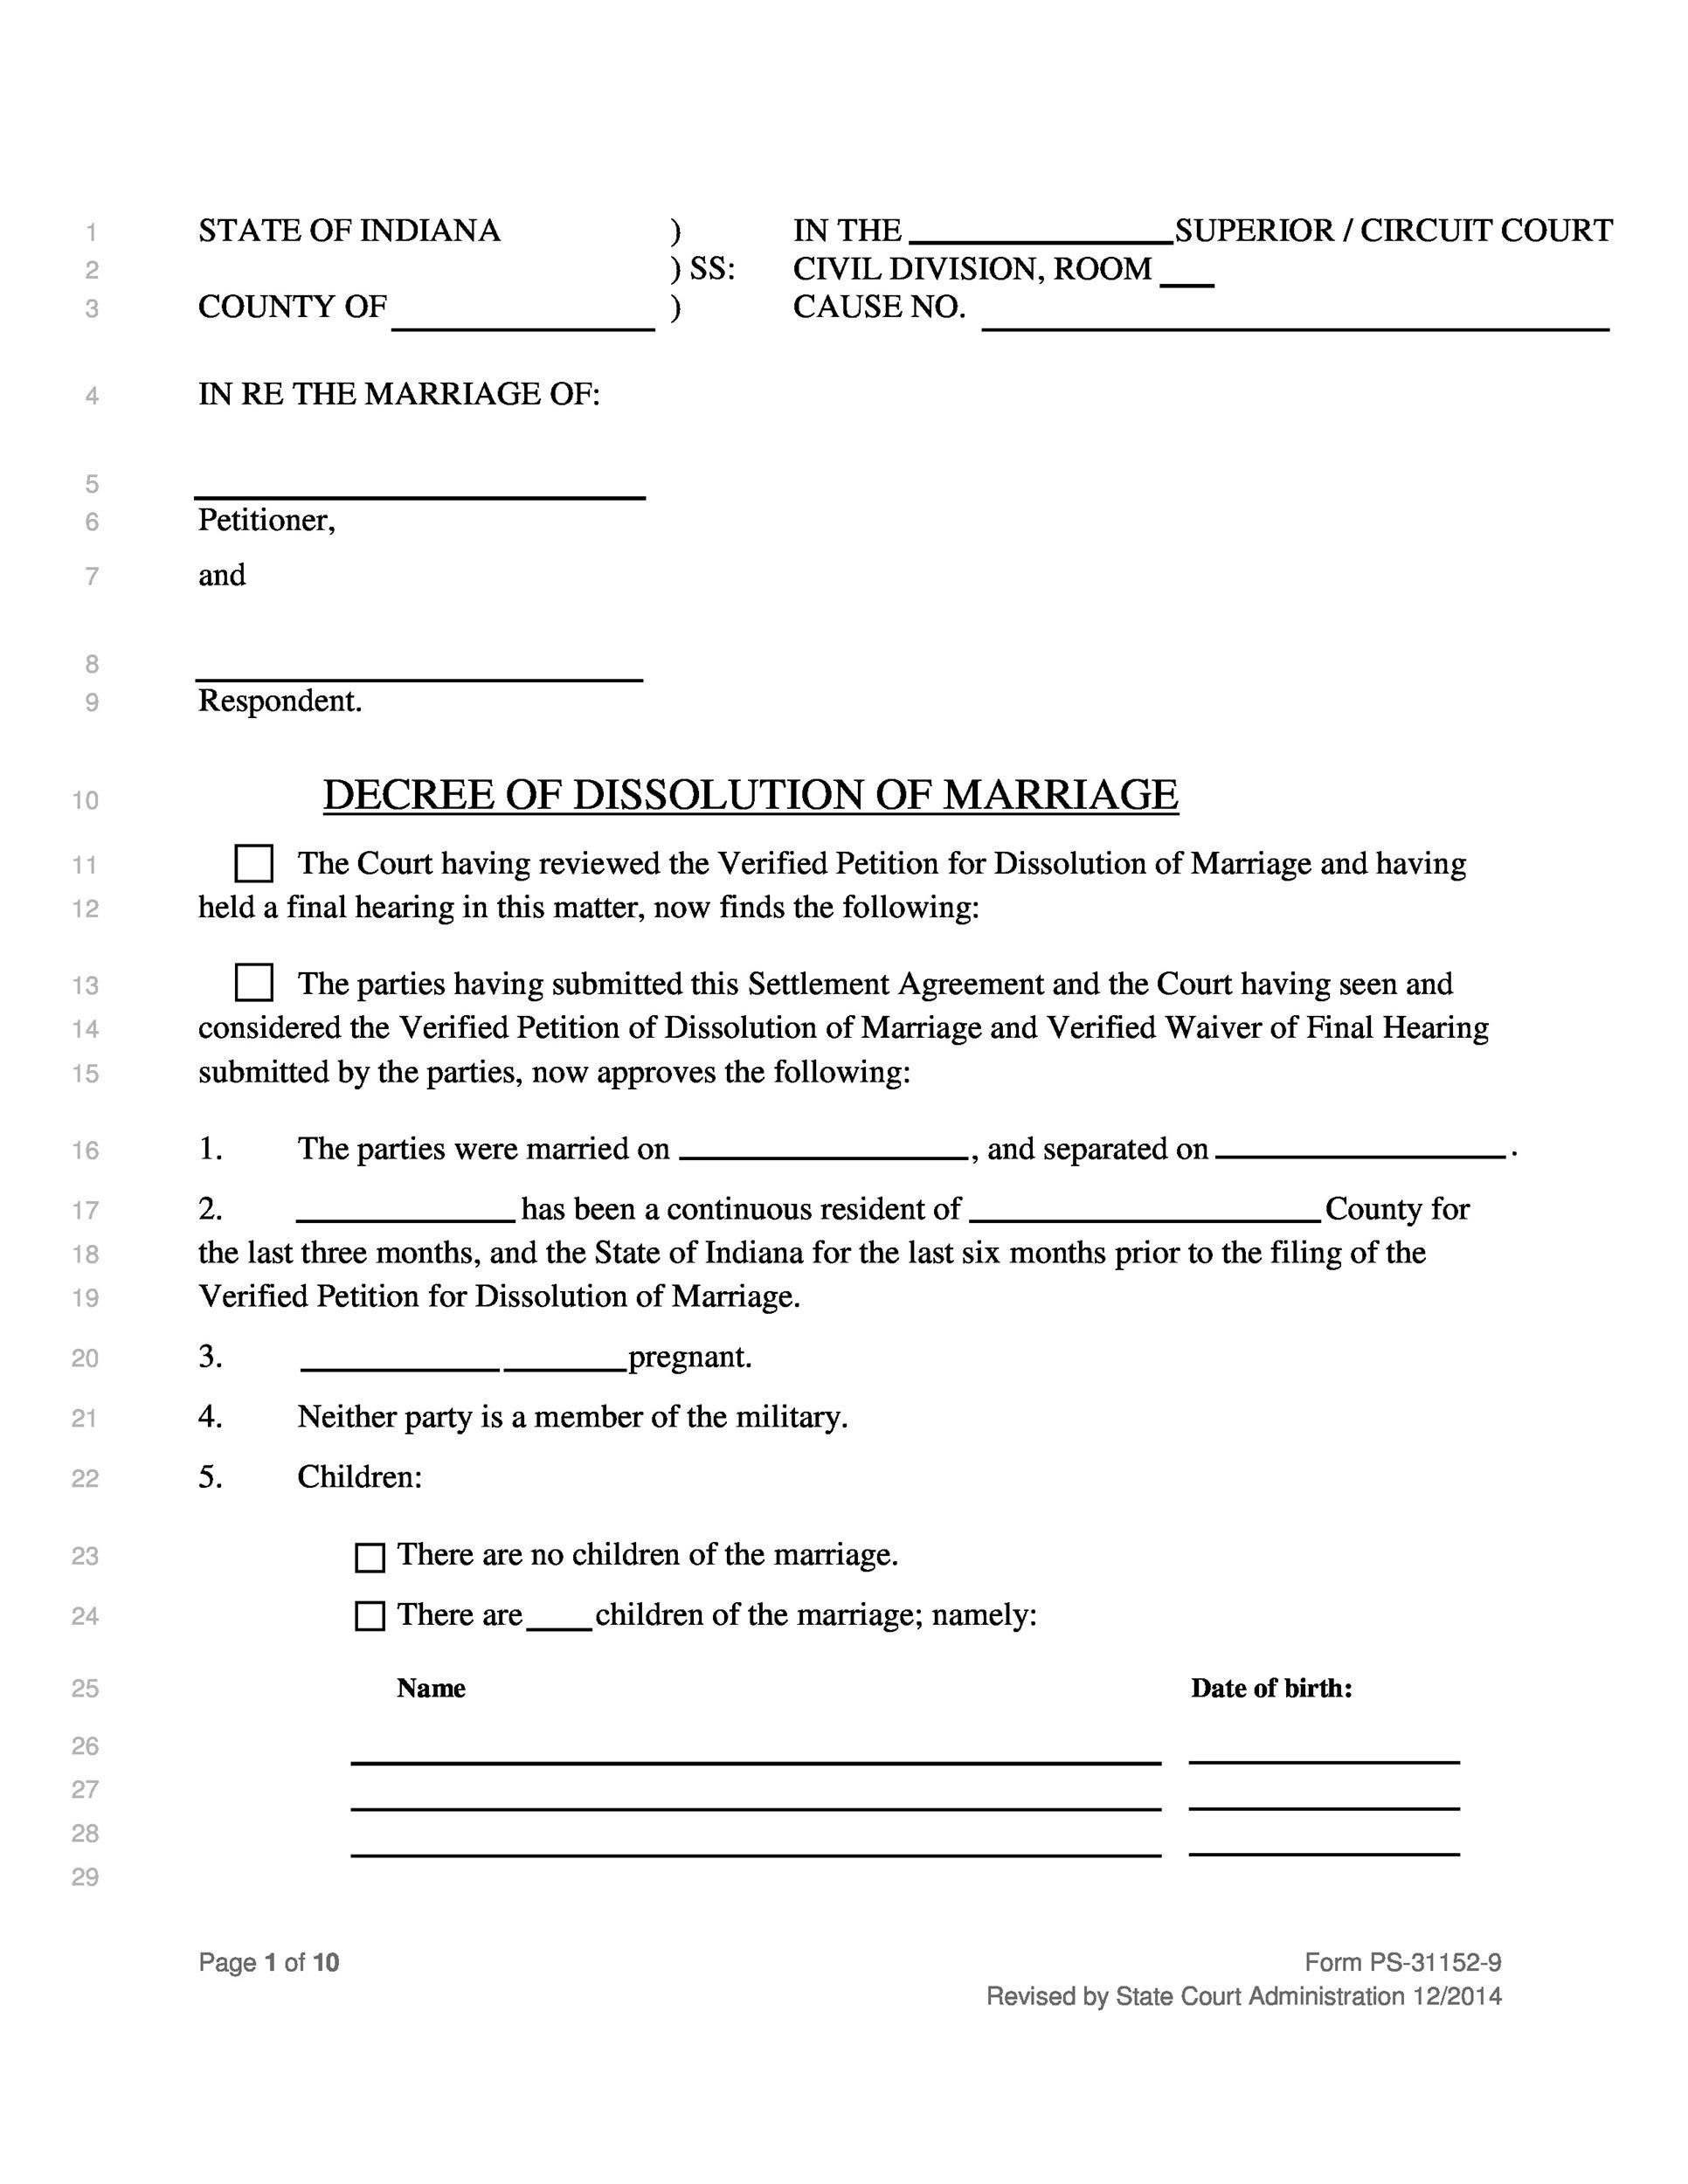 40 Free Divorce Papers Printable ᐅ Template Lab